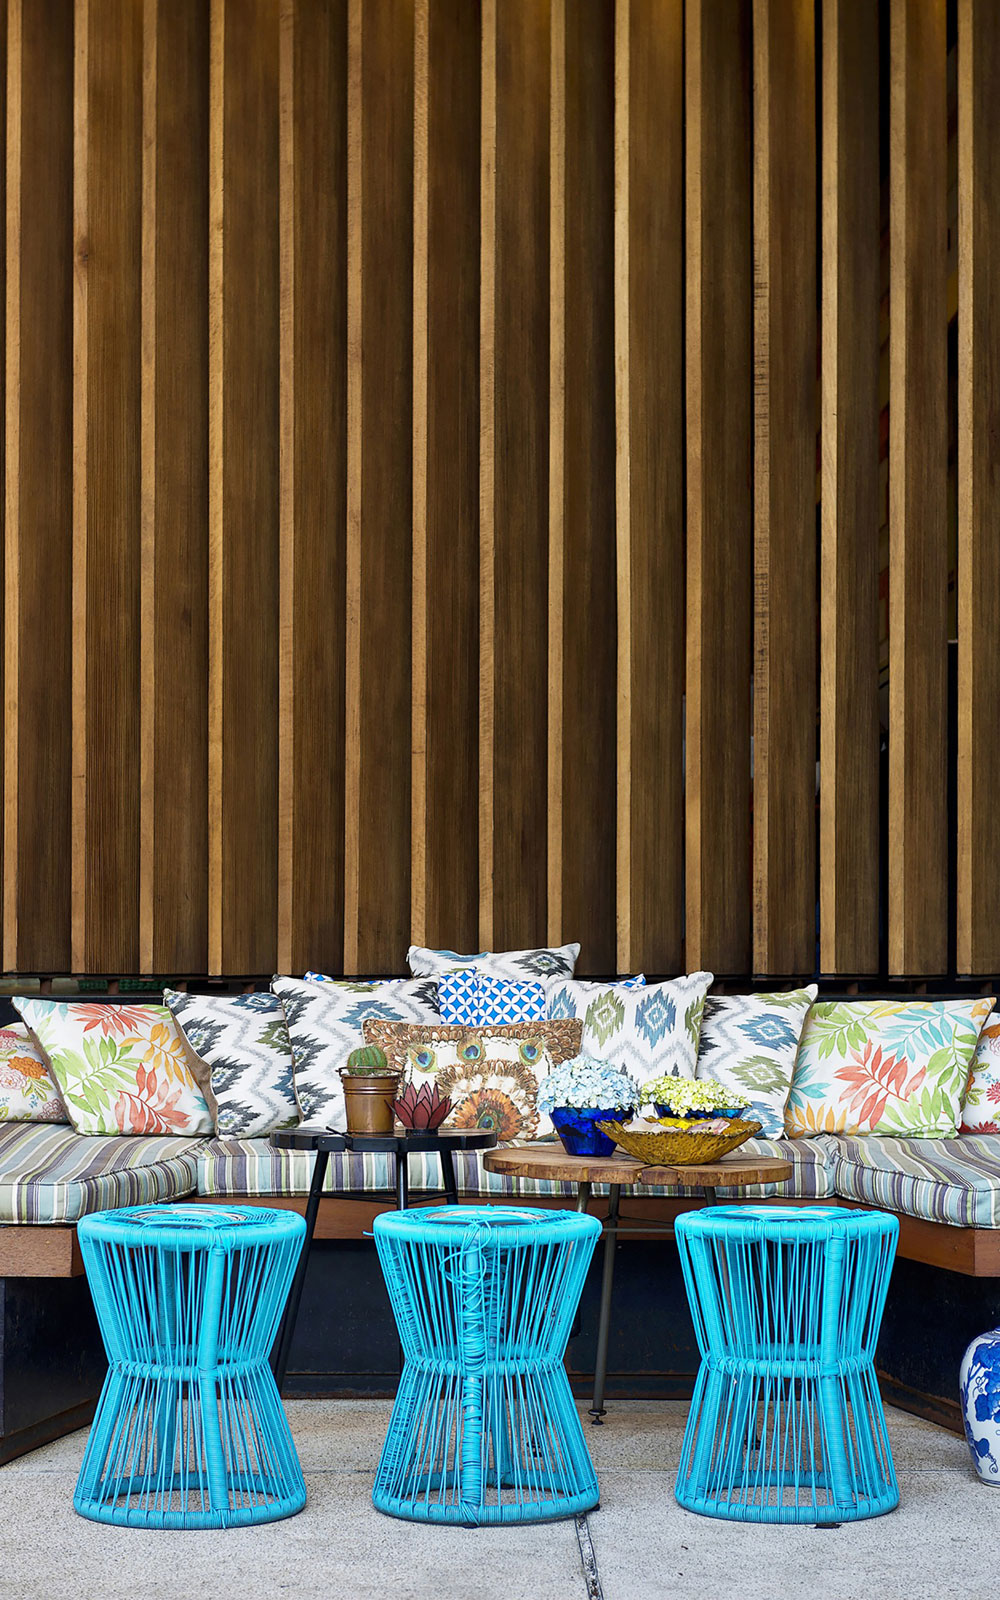 Stylish Tropical Paradise Theme of Lemongrass Restaurant Designed by Einstein & Associates-10